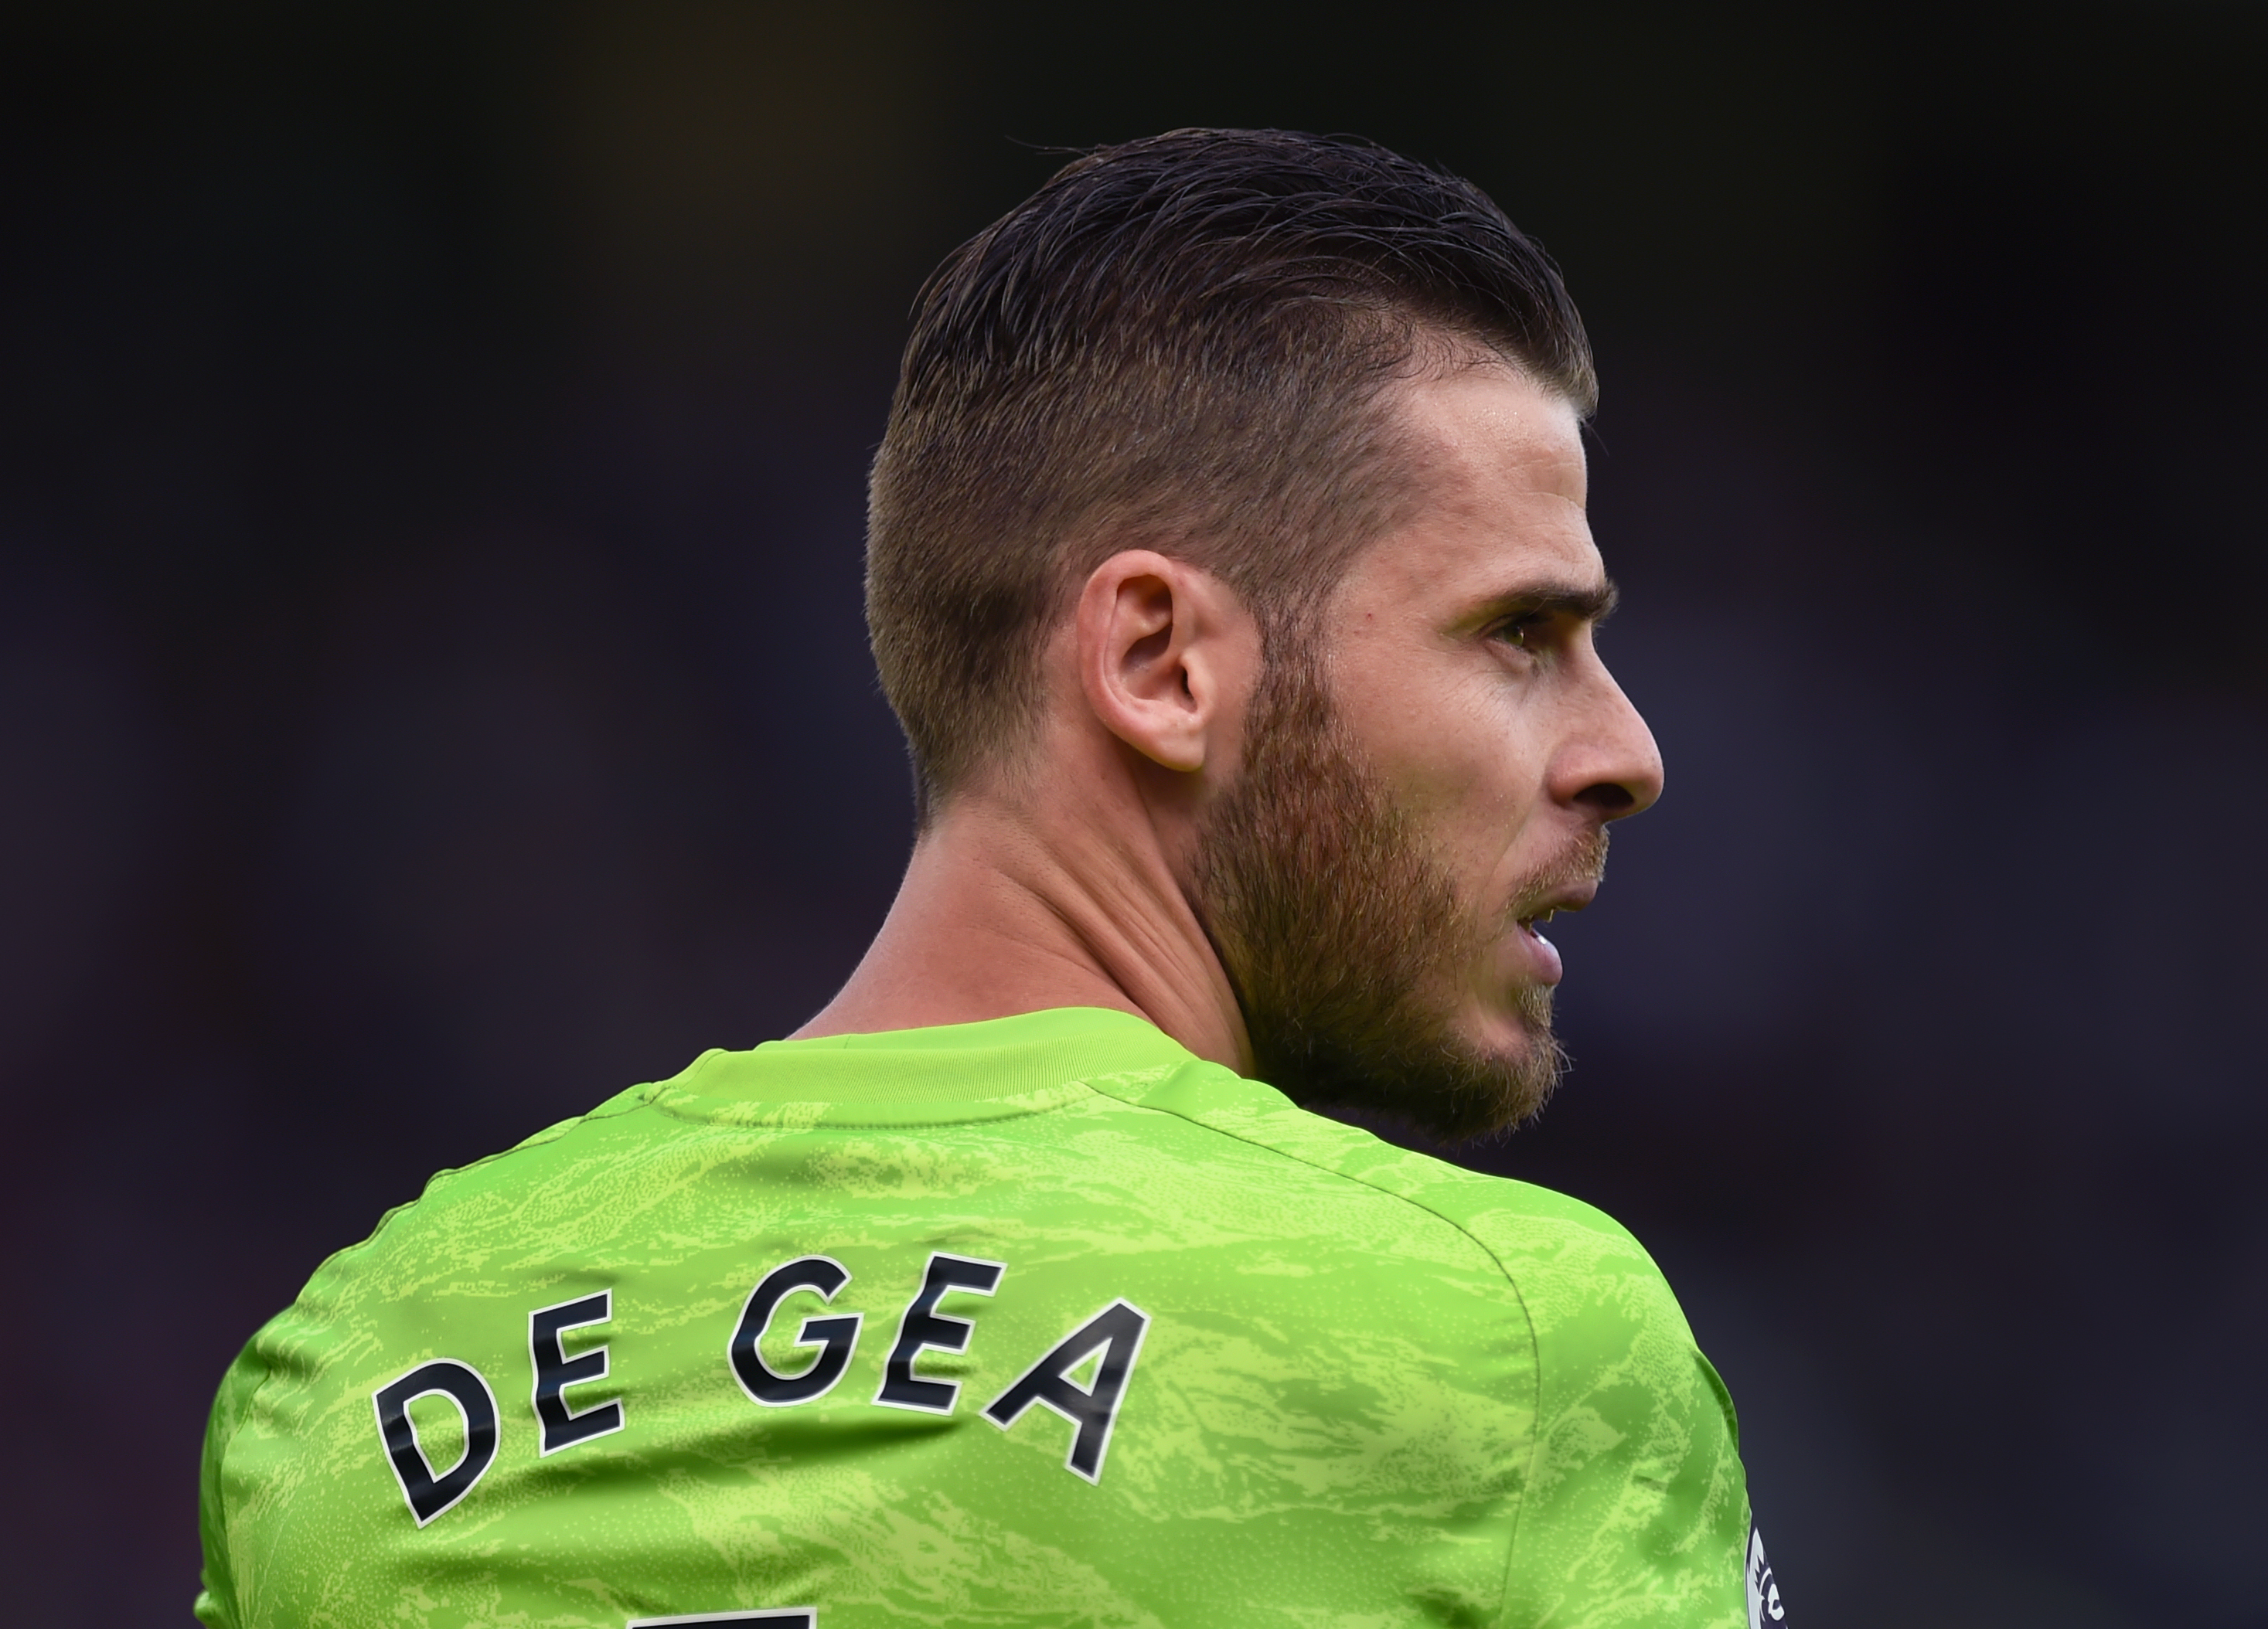 De Gea will be rested by Manchester United (Photo by Gary Prior/Getty Images)